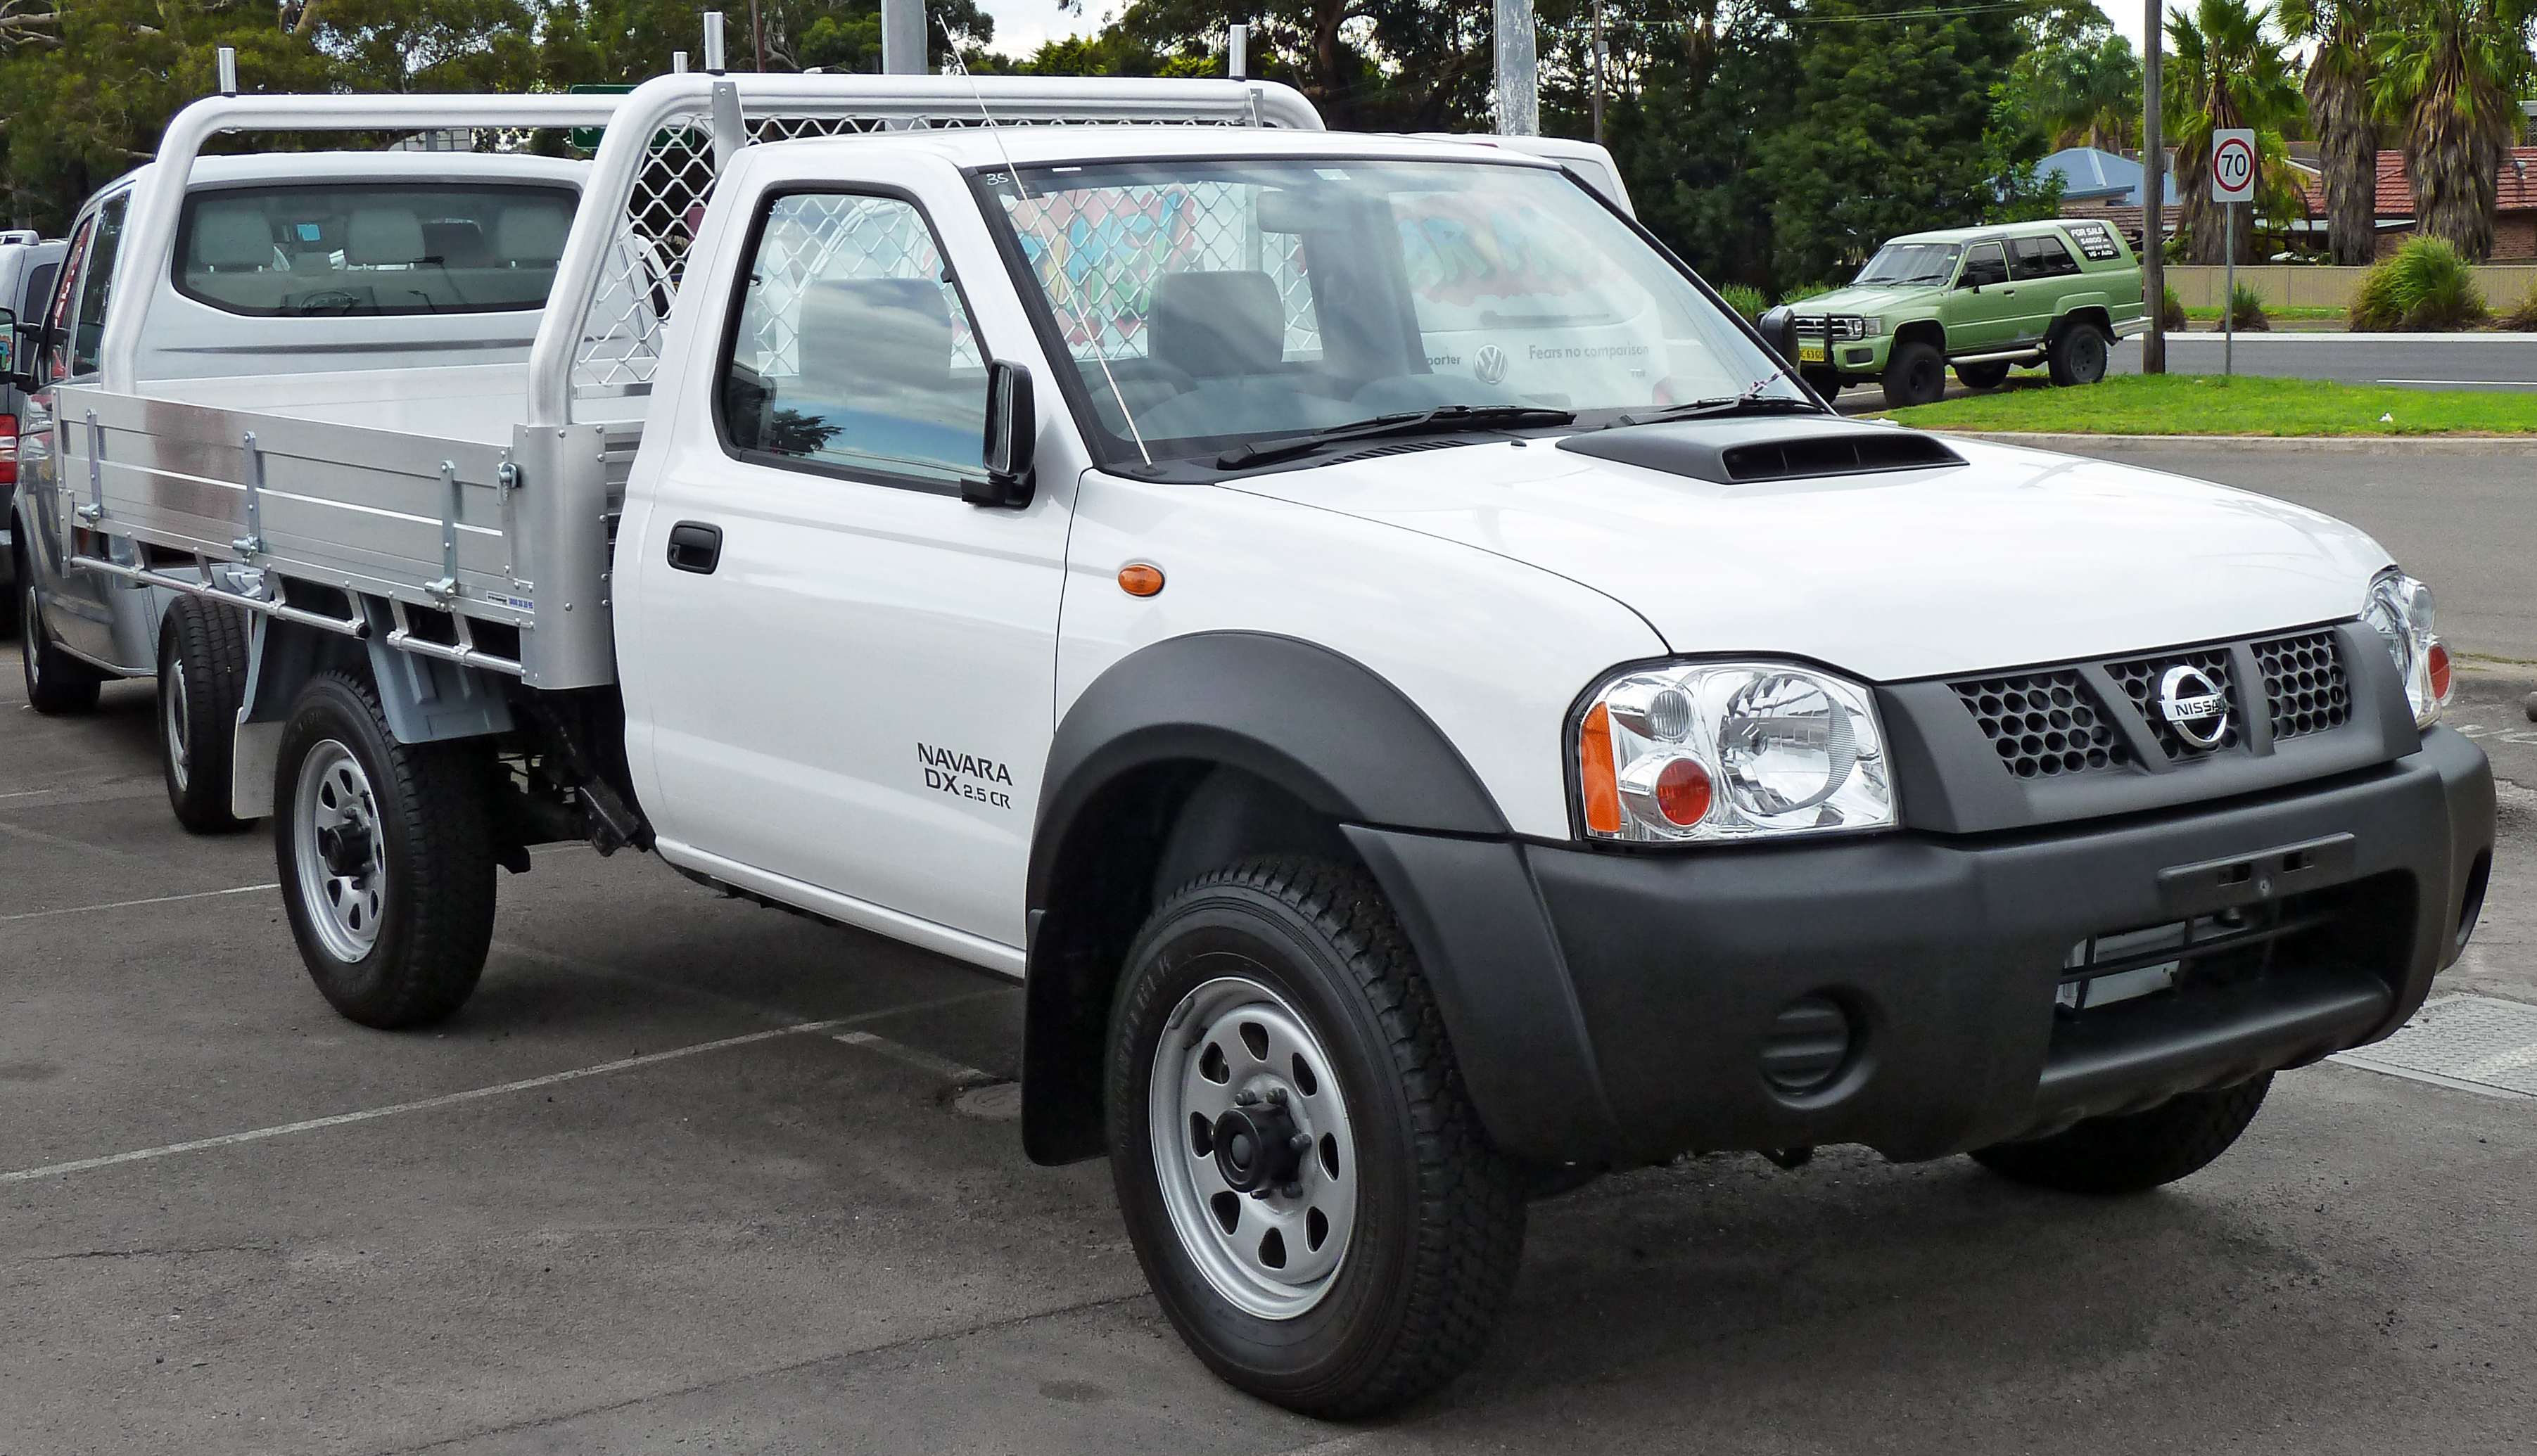 2010 nissan navara d40 pictures information and specs auto pictures of nissan navara d40 2010 8 asfbconference2016 Gallery